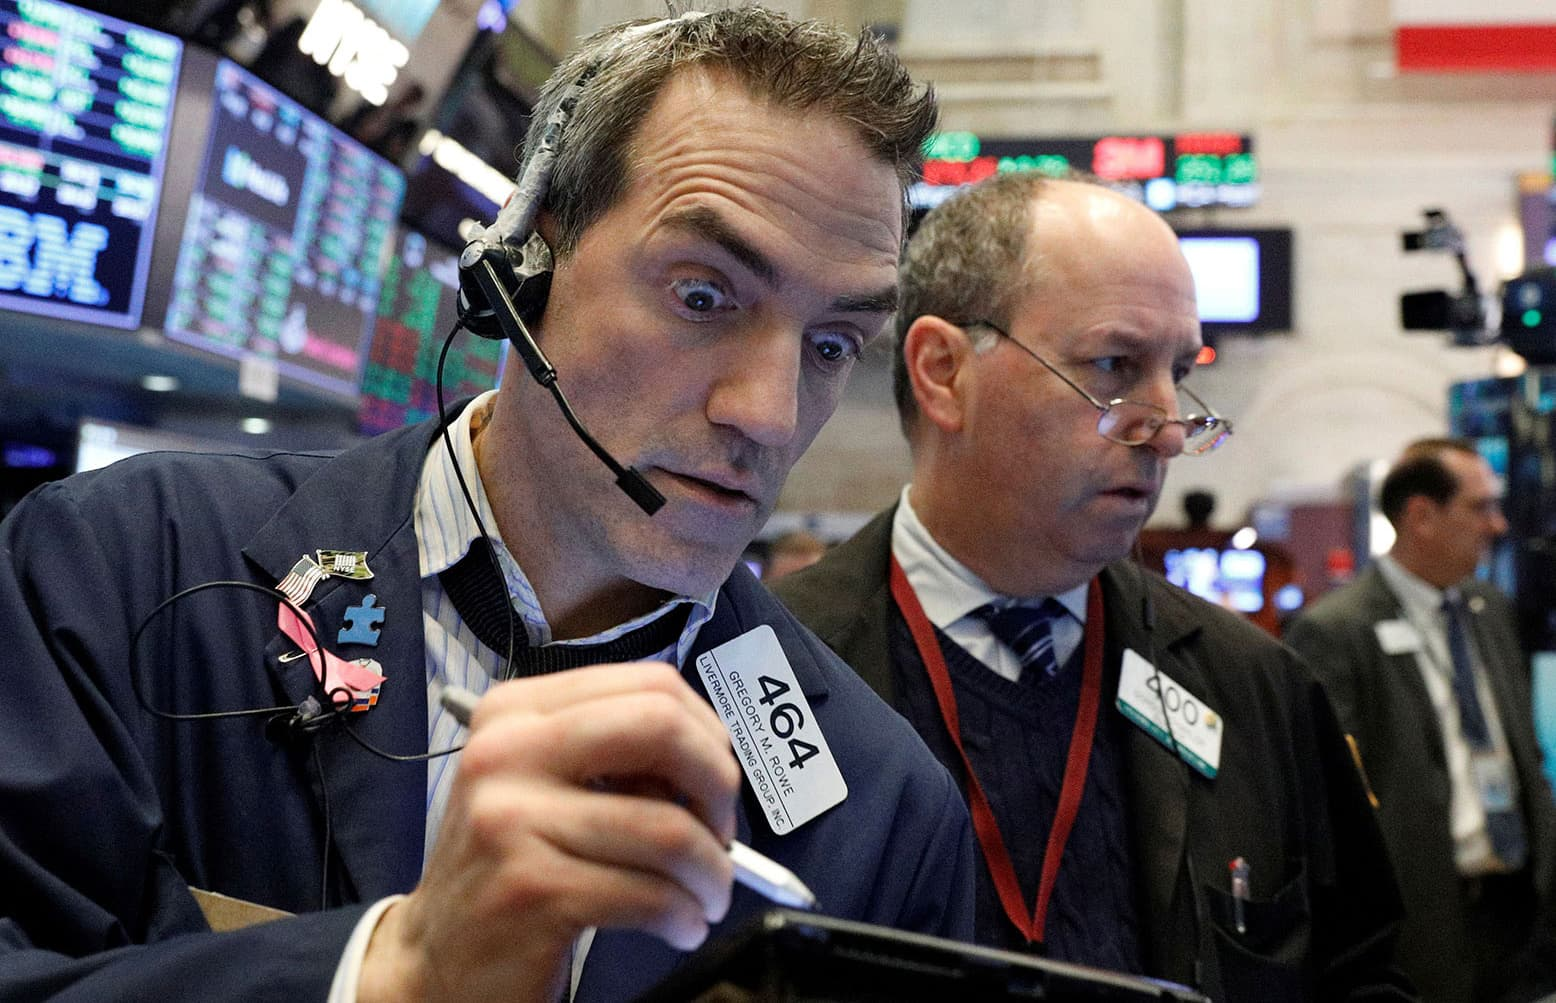 Stocks appear detached from reality, rallying in anticipation of two things that may not happen